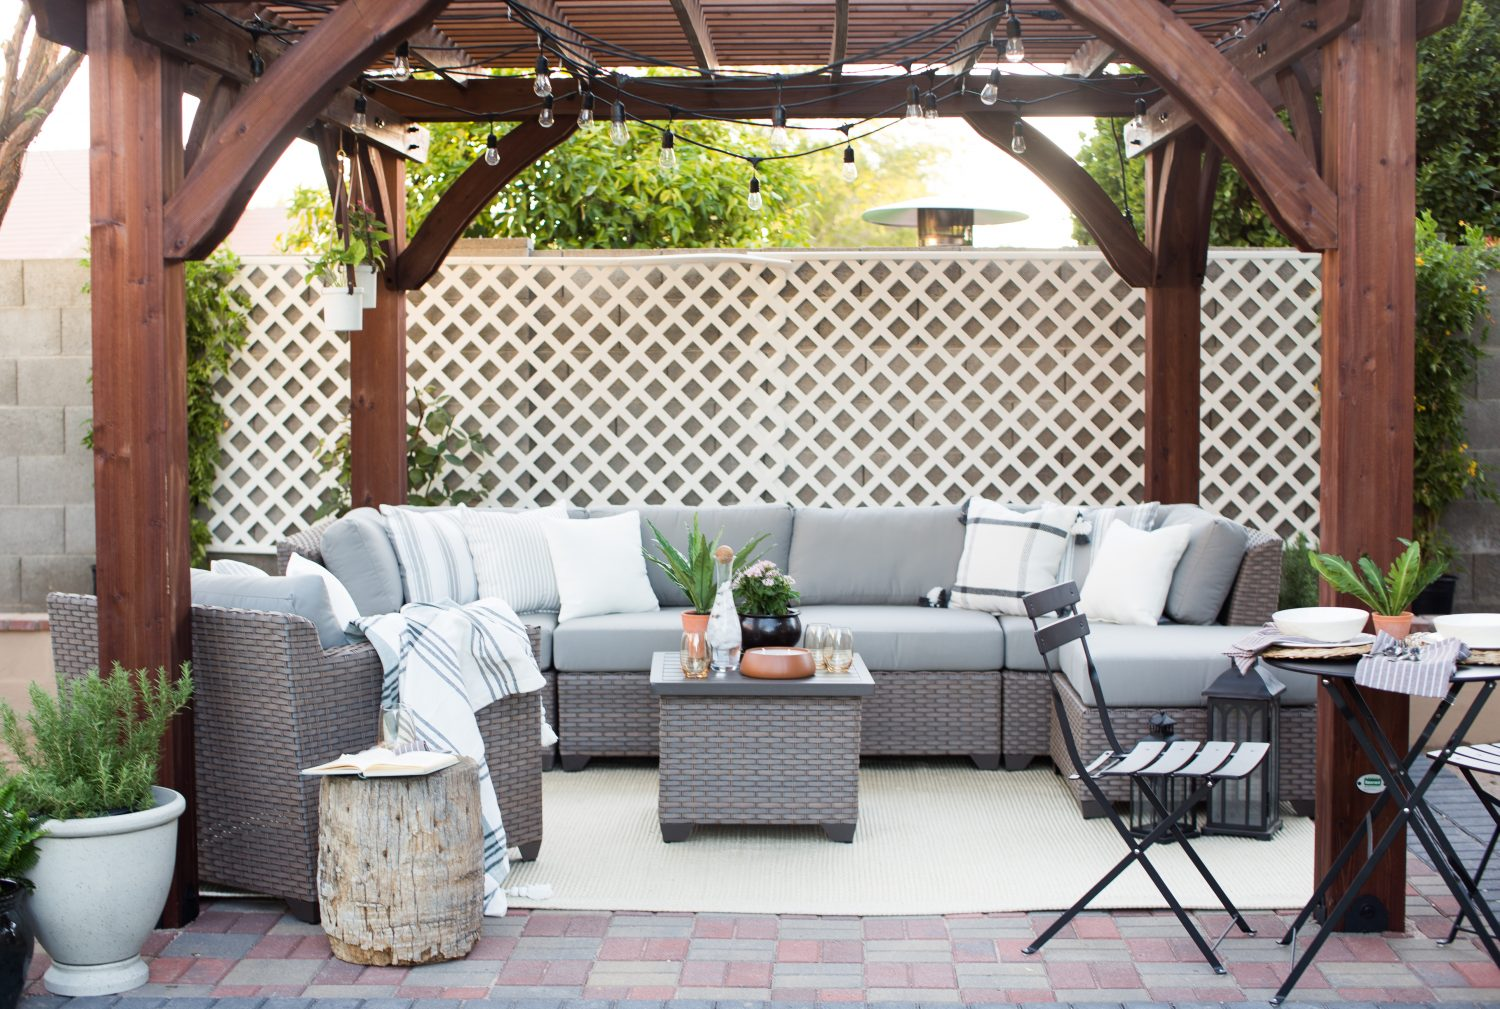 Luxury Pergola Options in Phoenix Area from Home Depot